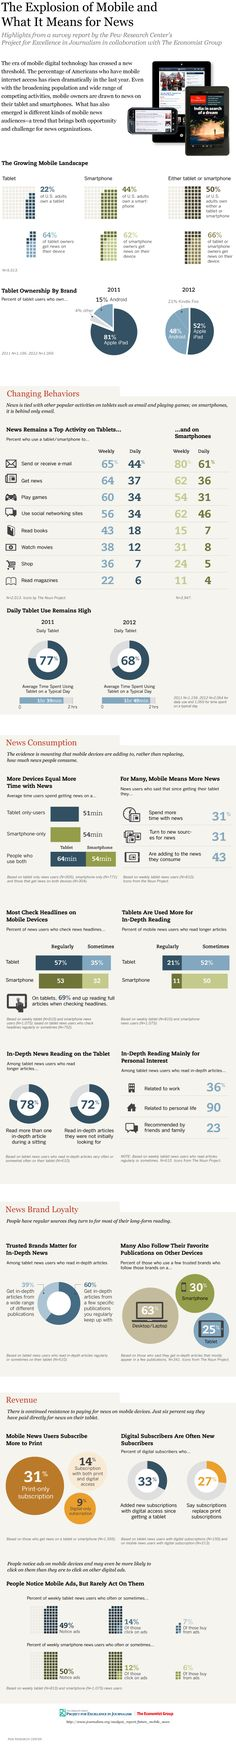 The explosion of mobile and what it means for news. By http://journalism.org